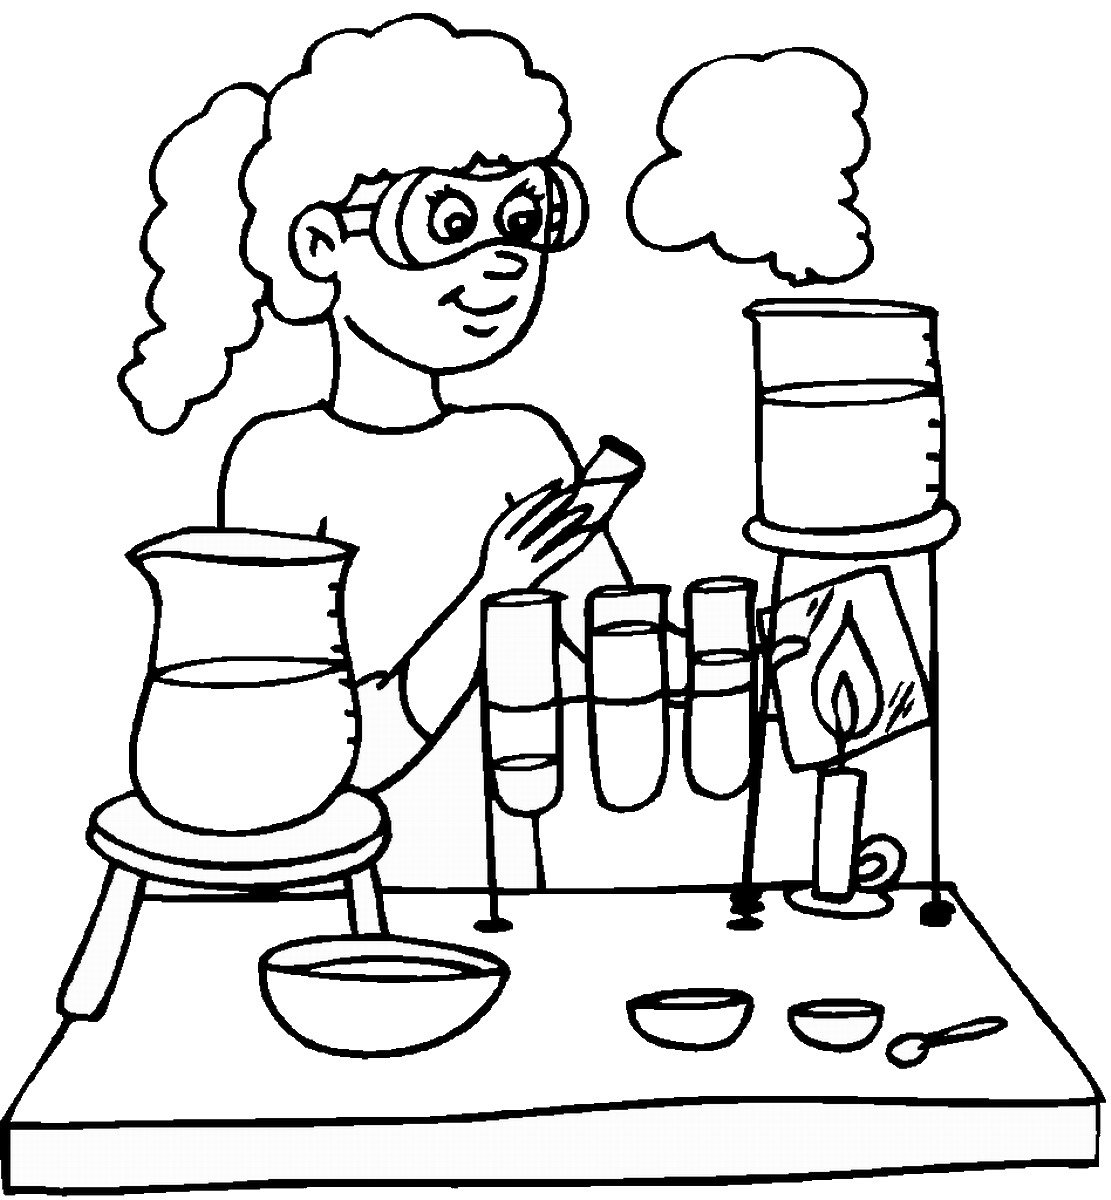 science coloring pages birthday printable. Black Bedroom Furniture Sets. Home Design Ideas